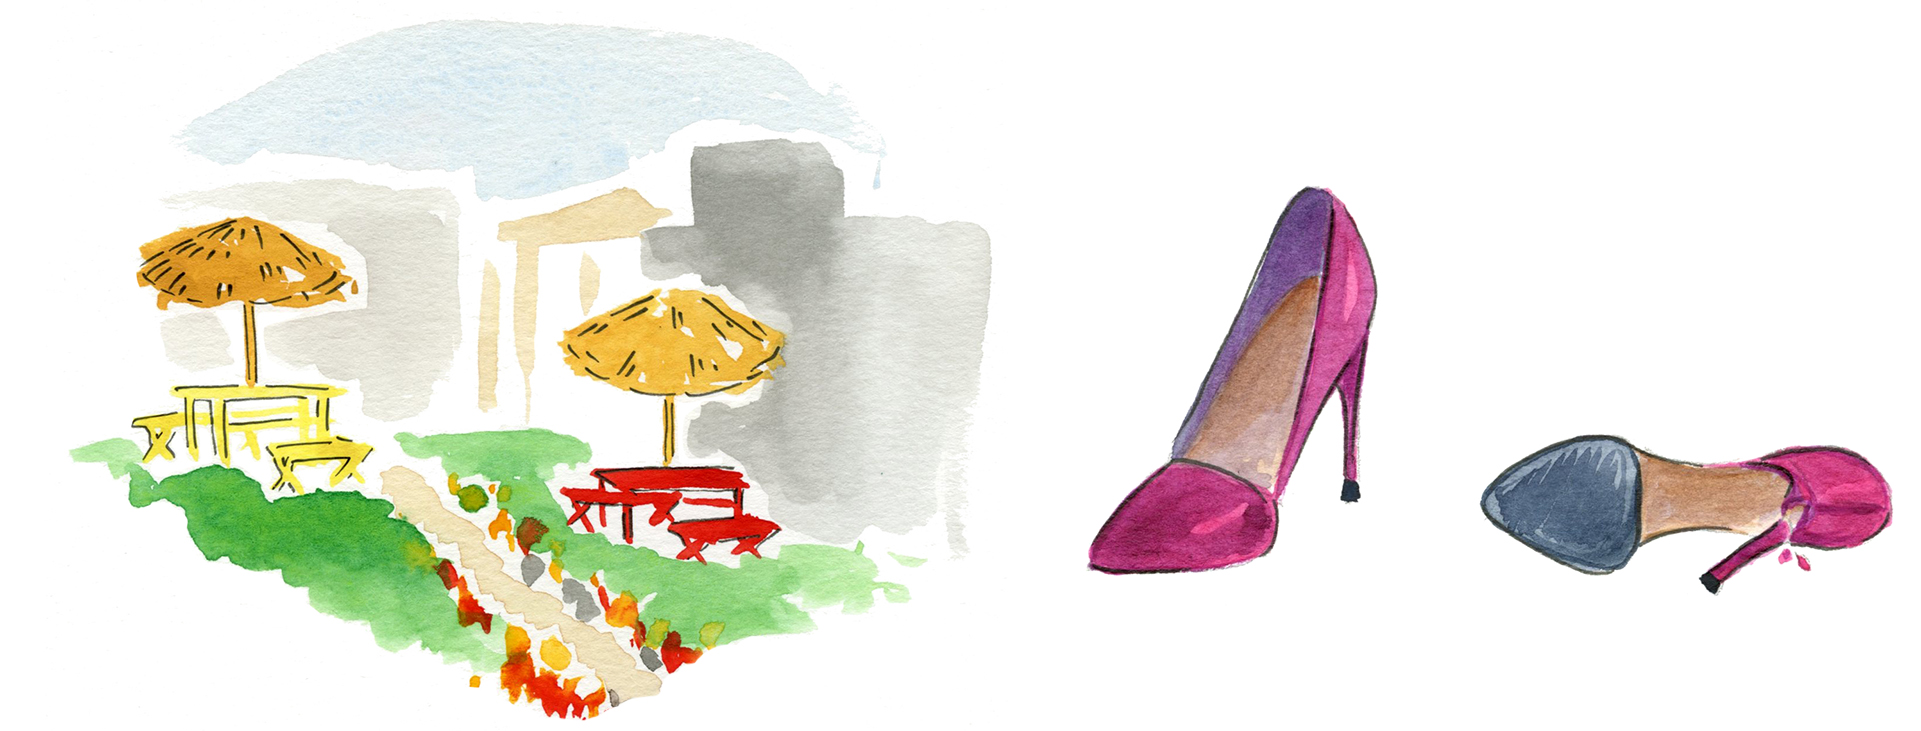 In Her Shoes Illustration